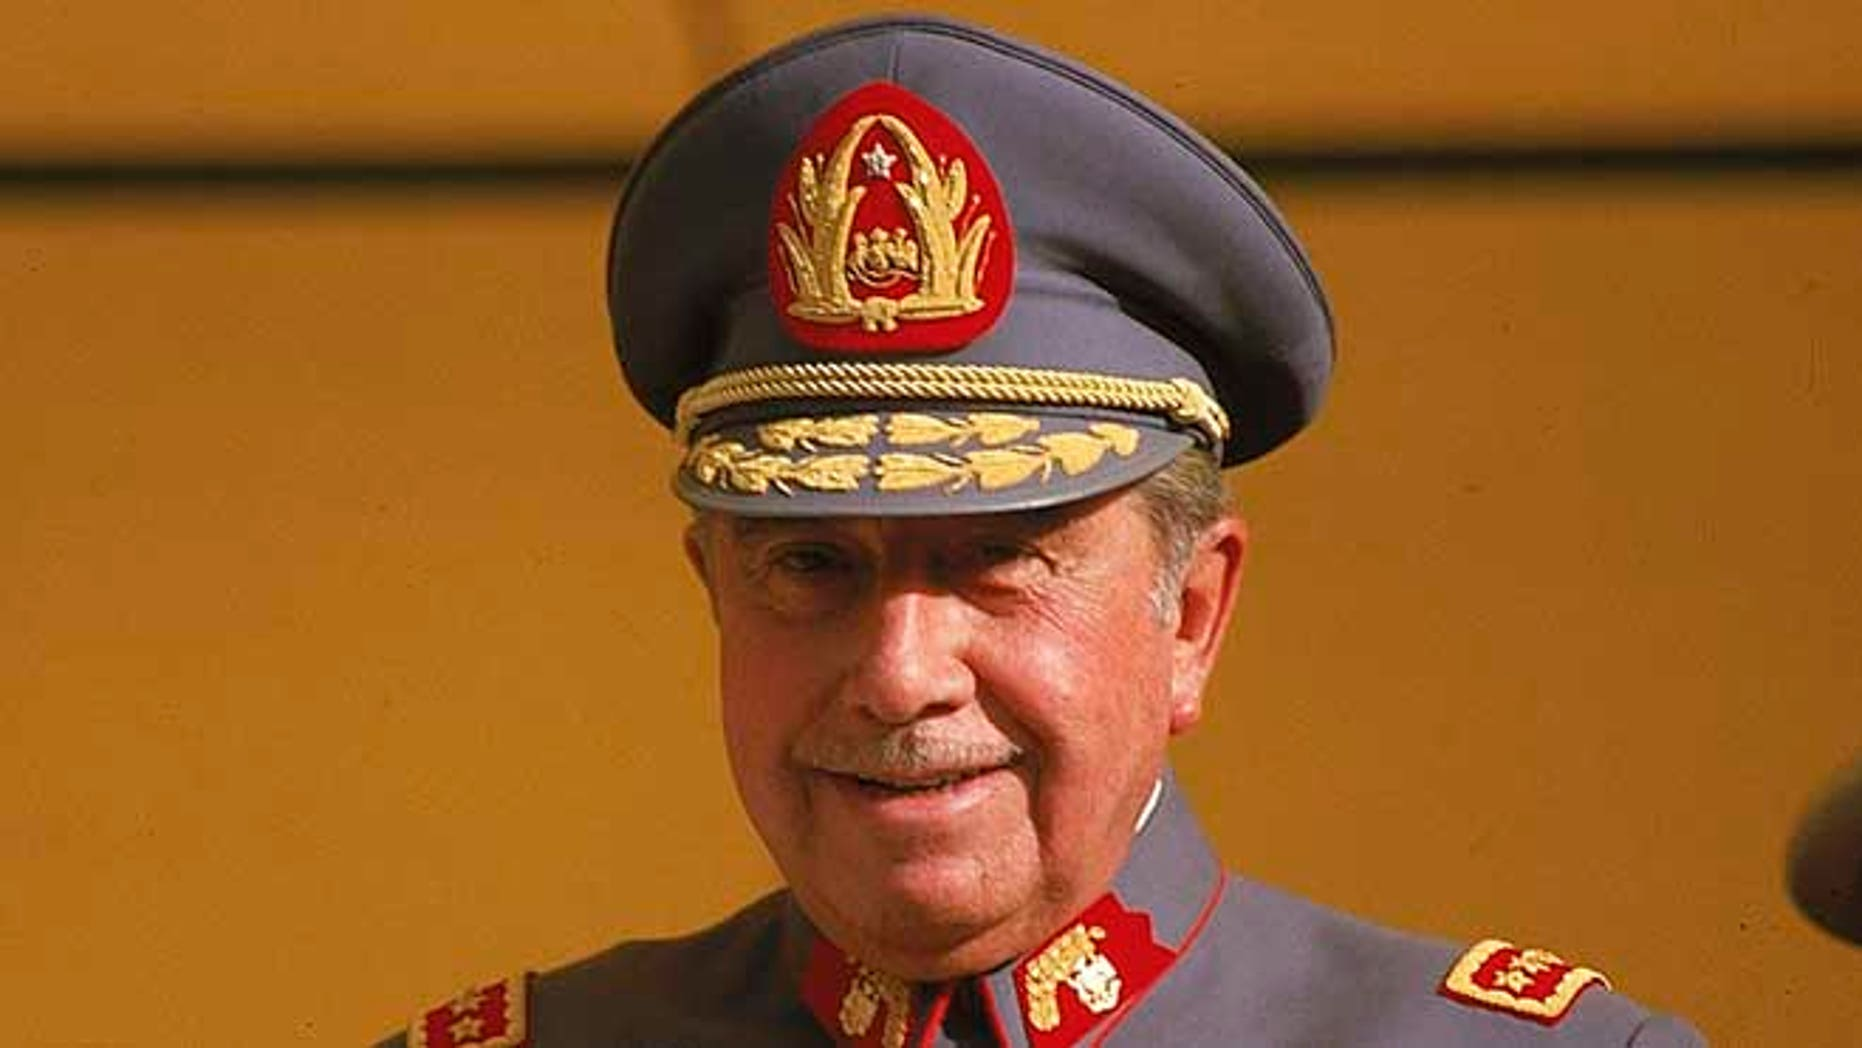 Code of silence about atrocities committed during Pinochet era in